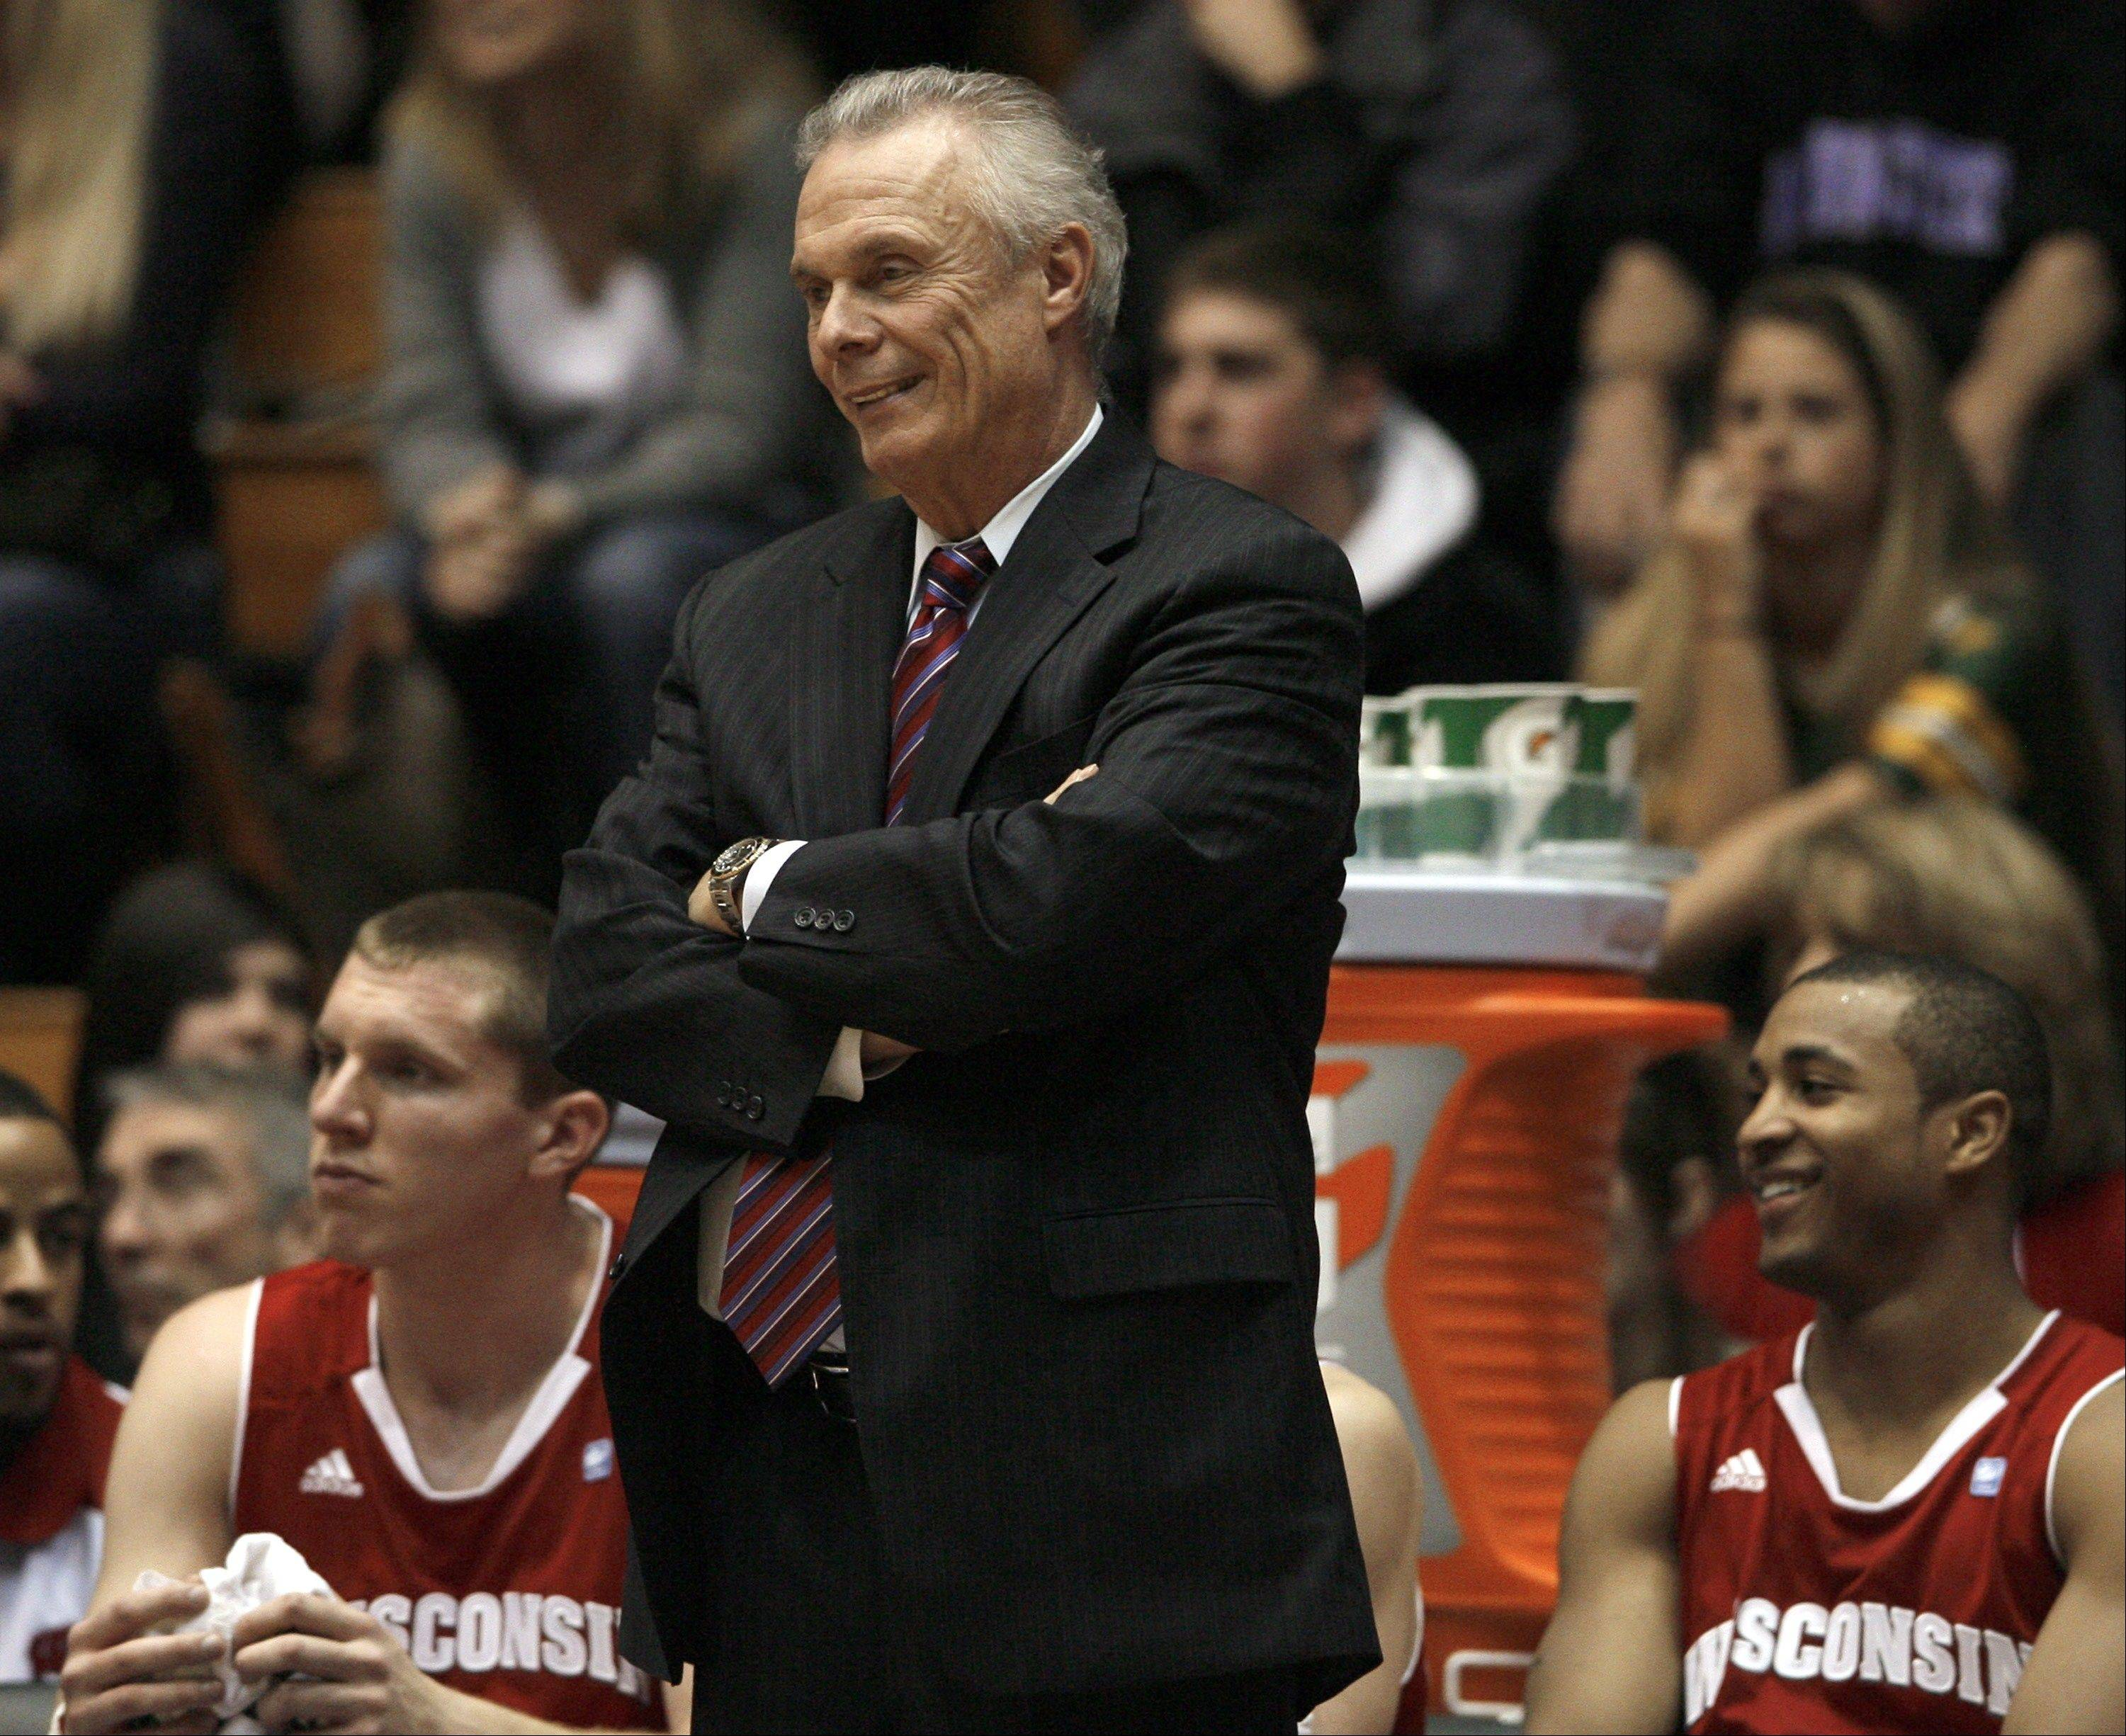 Wisconsin's head coach Bo Ryan, who has a reputation as a task master, also knows a little about sarcasm.